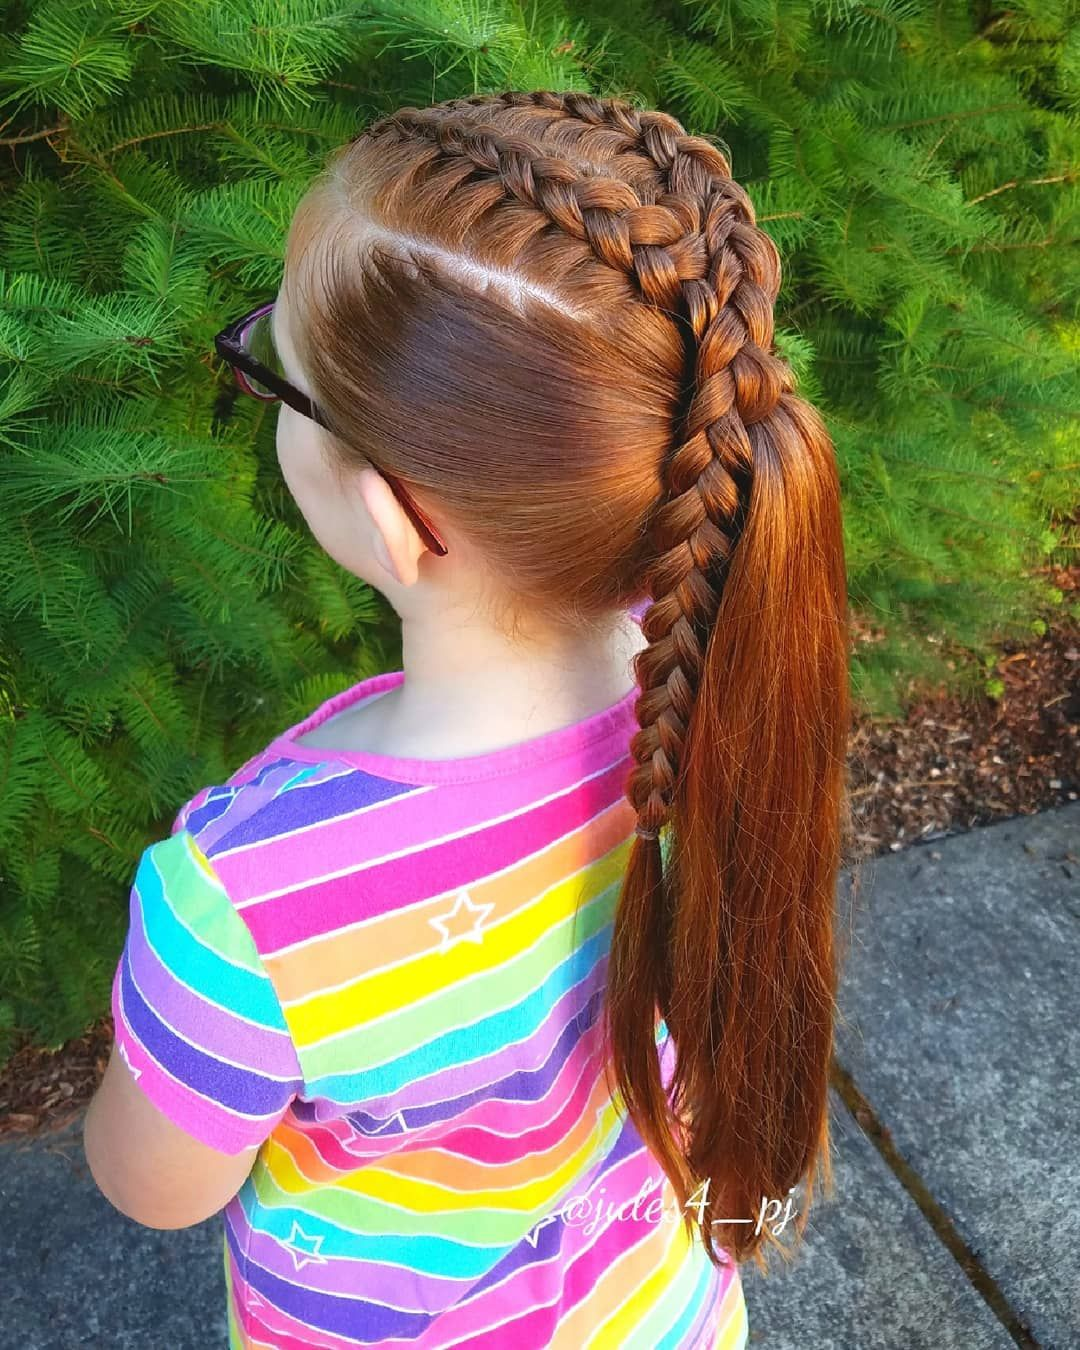 Dutch Braids High Ponytail Easy Braid Styles School Hair Kid